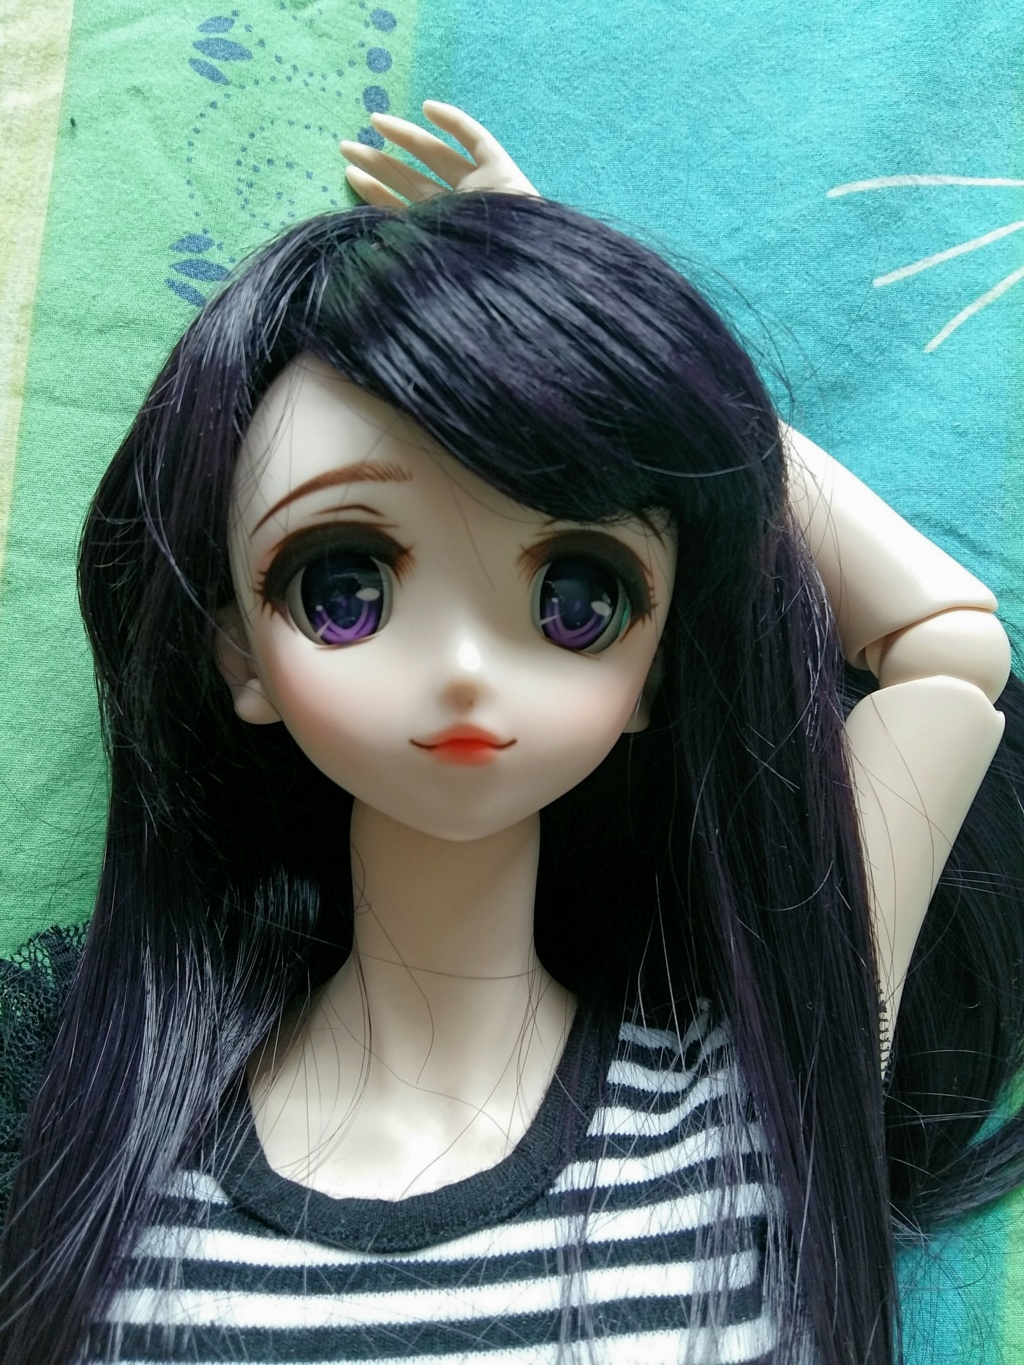 [Vends] Dollfie dream 03 head SWS dddy body NS + extras 2019-011